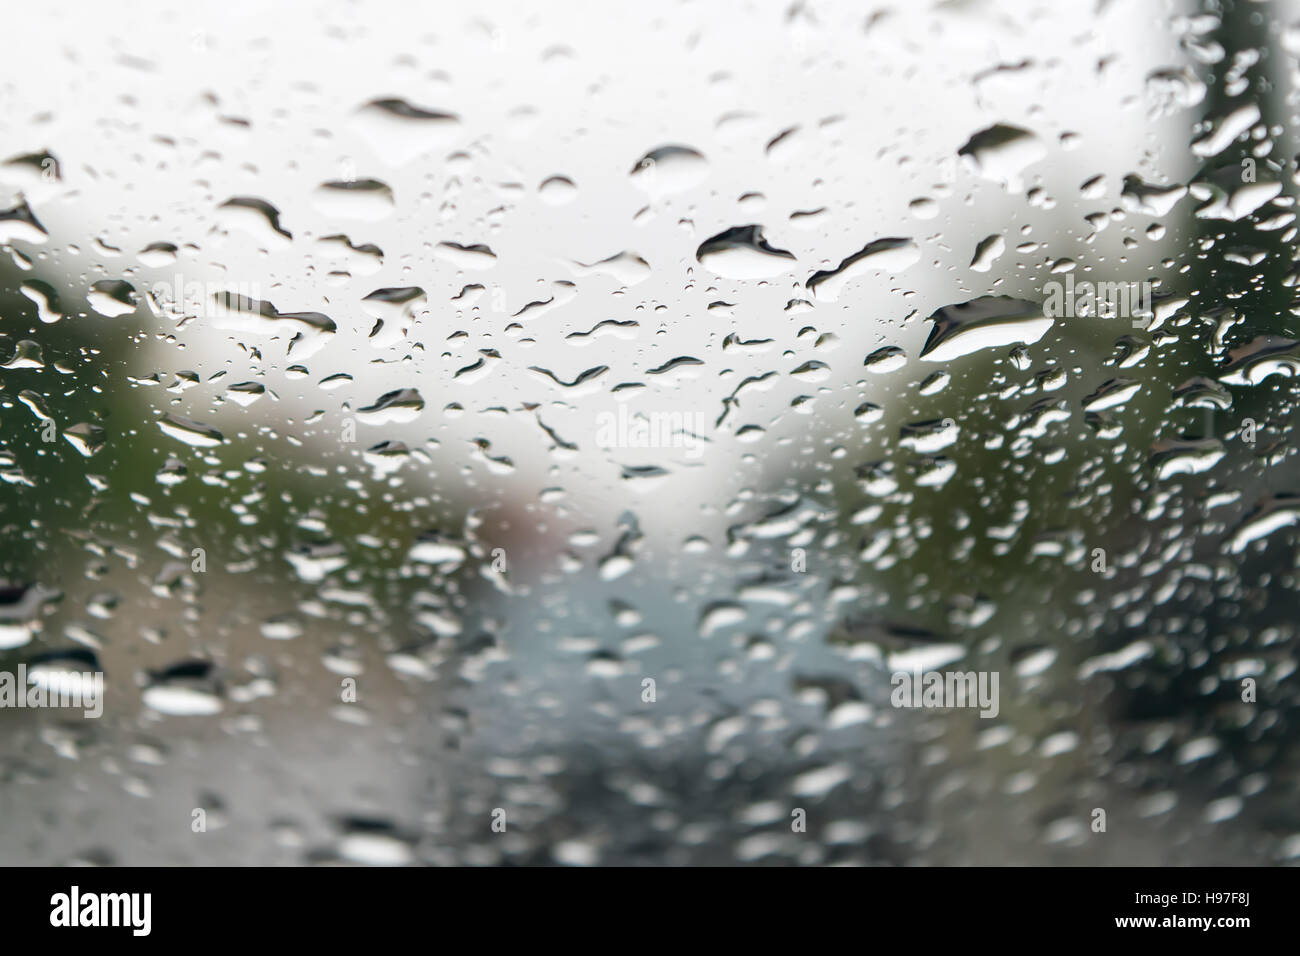 Raindrop on a glass useful as a background - Stock Image